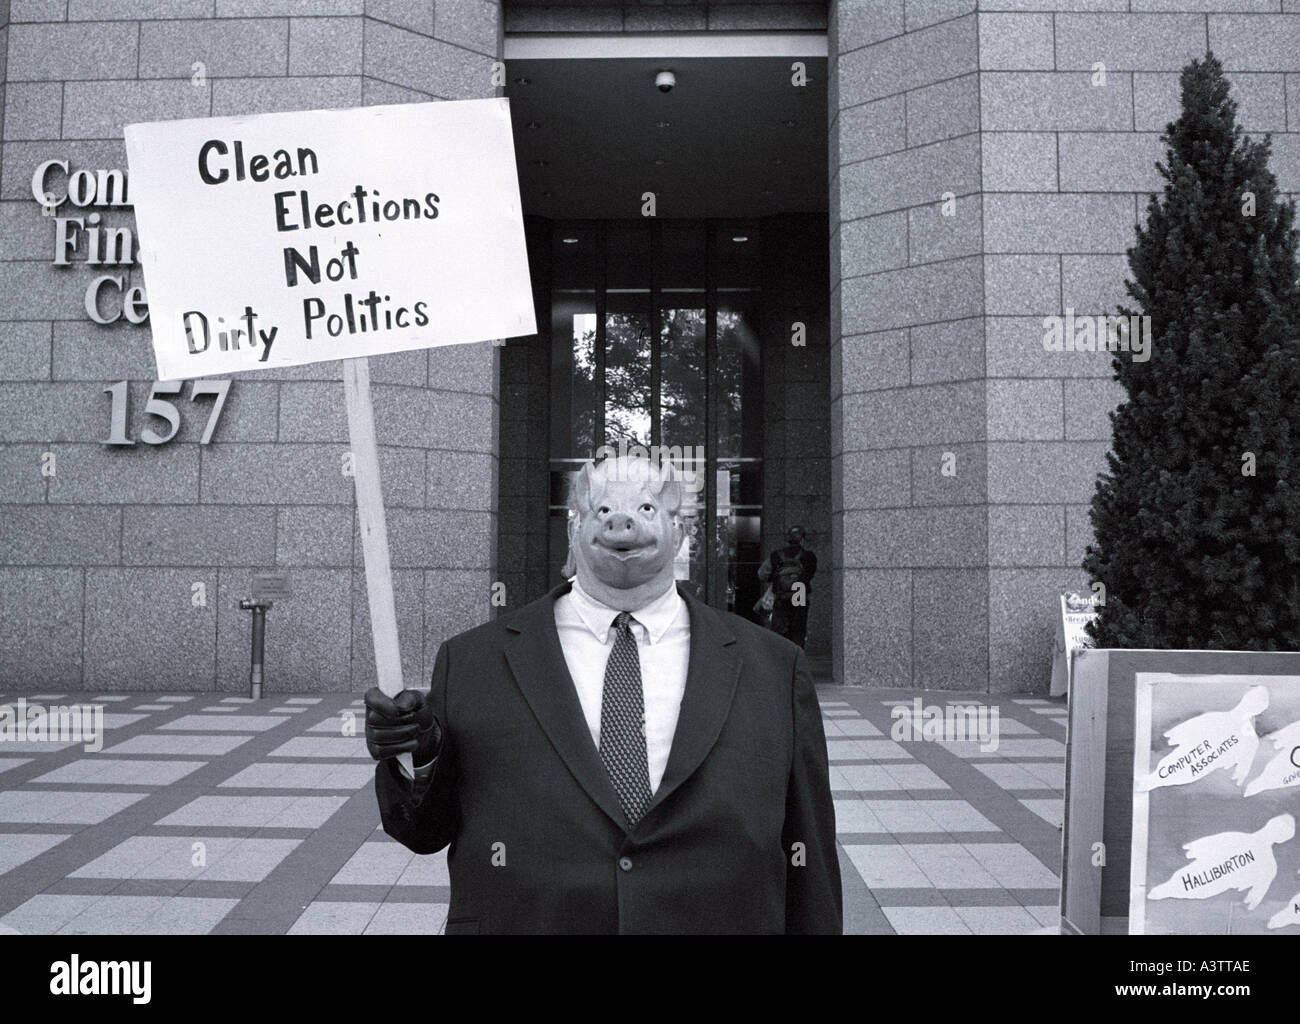 Protester with pig mask on protesting dirty politics and corporate greed - Stock Image